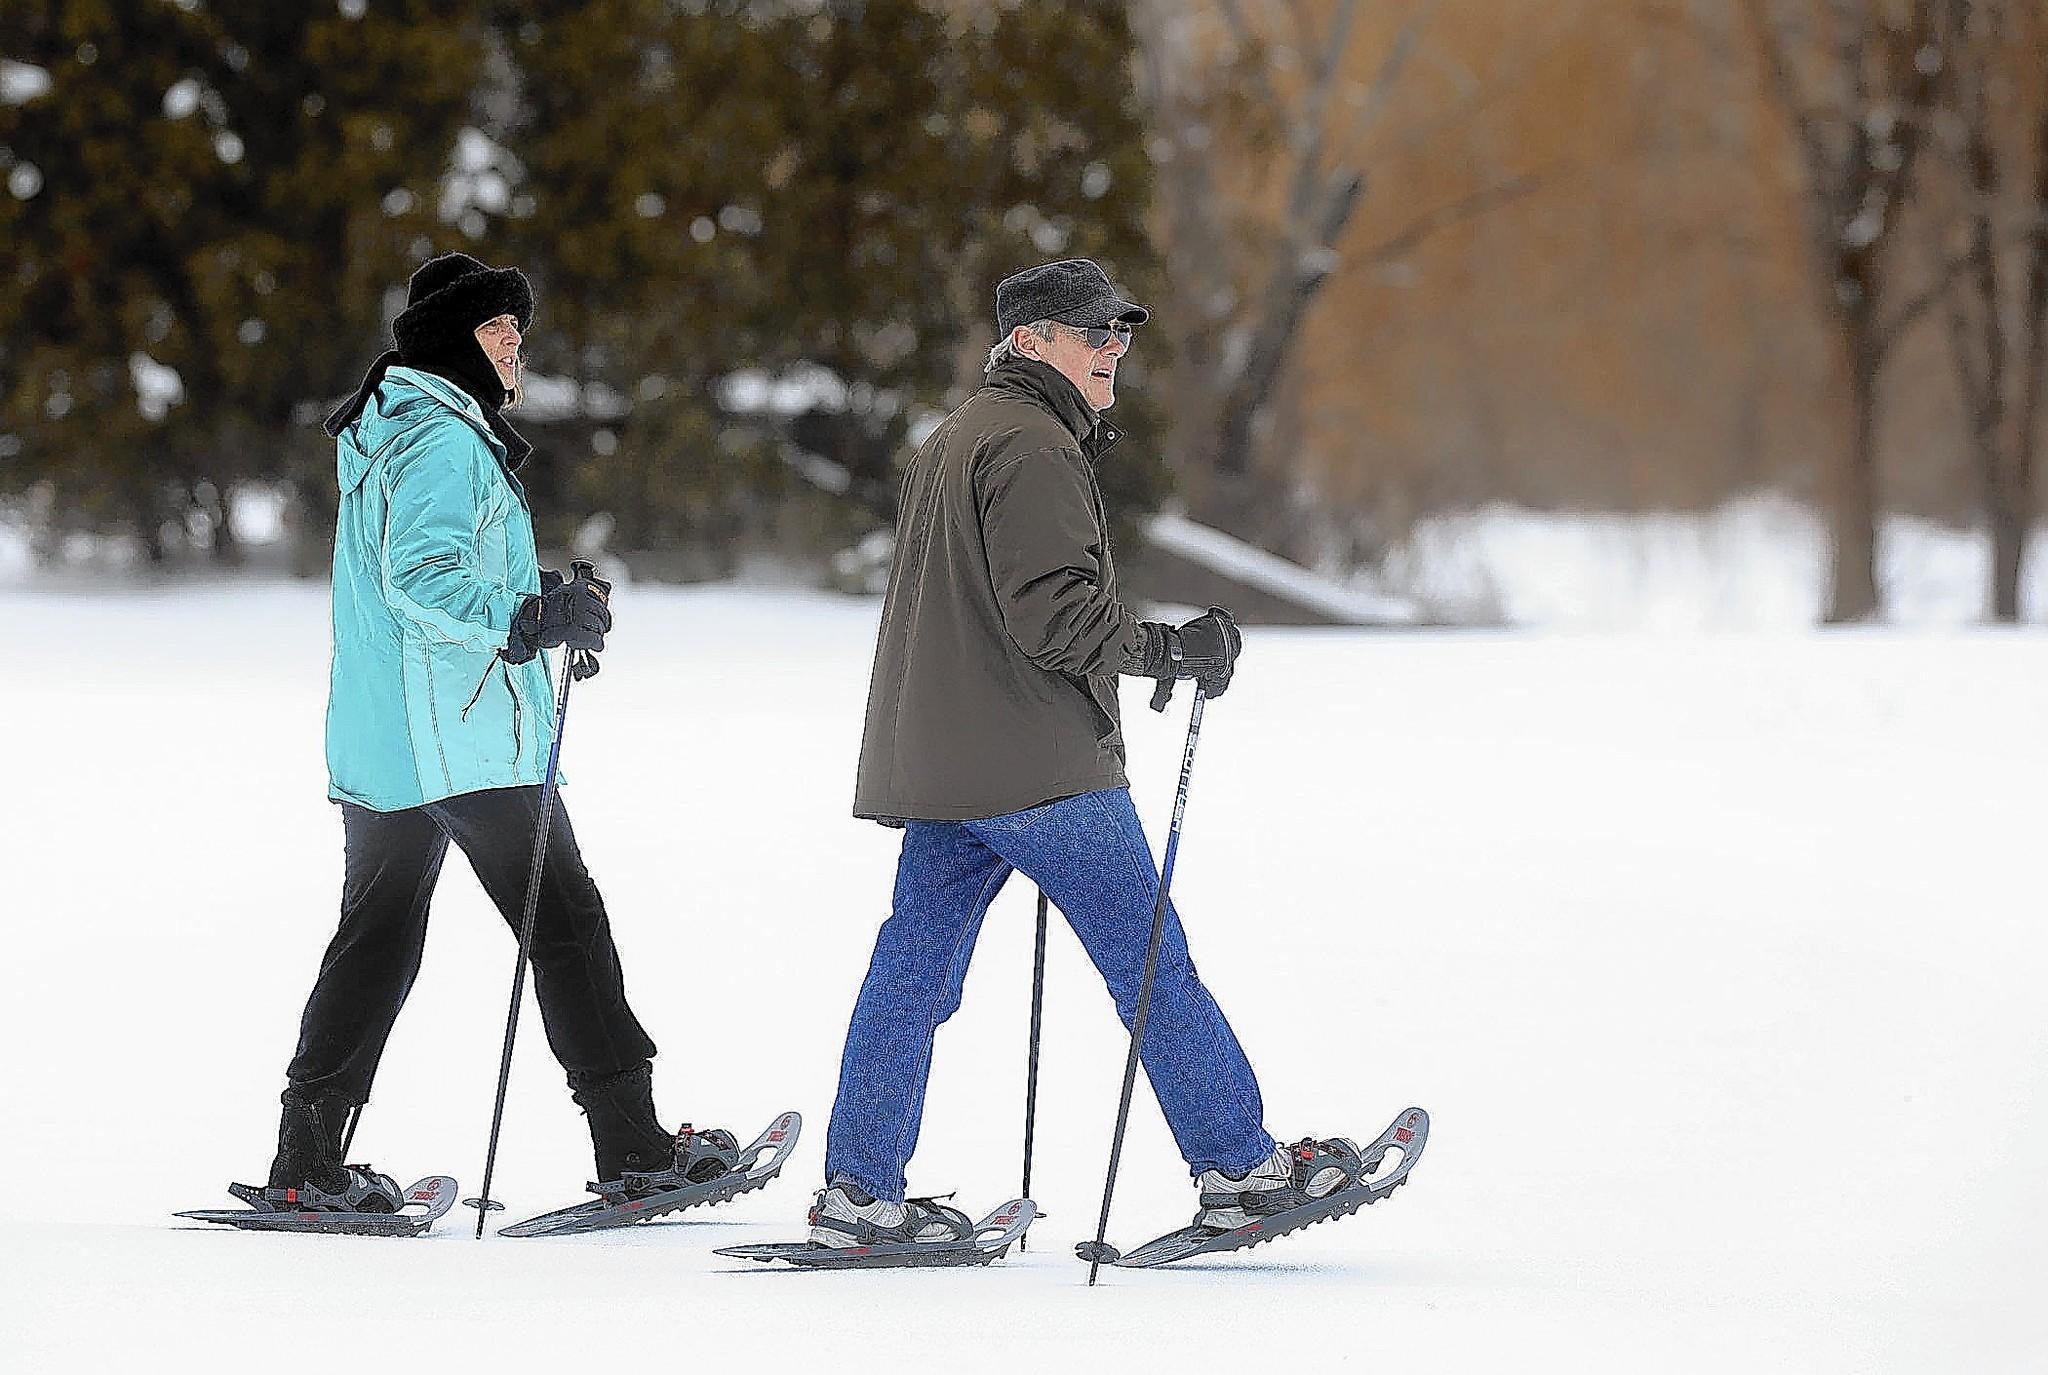 Tina Madonia-Brown (left) along with her husband Bill Brown (right) both of North Whitehall snow-shoe during the Allentown Winterfest 2014.